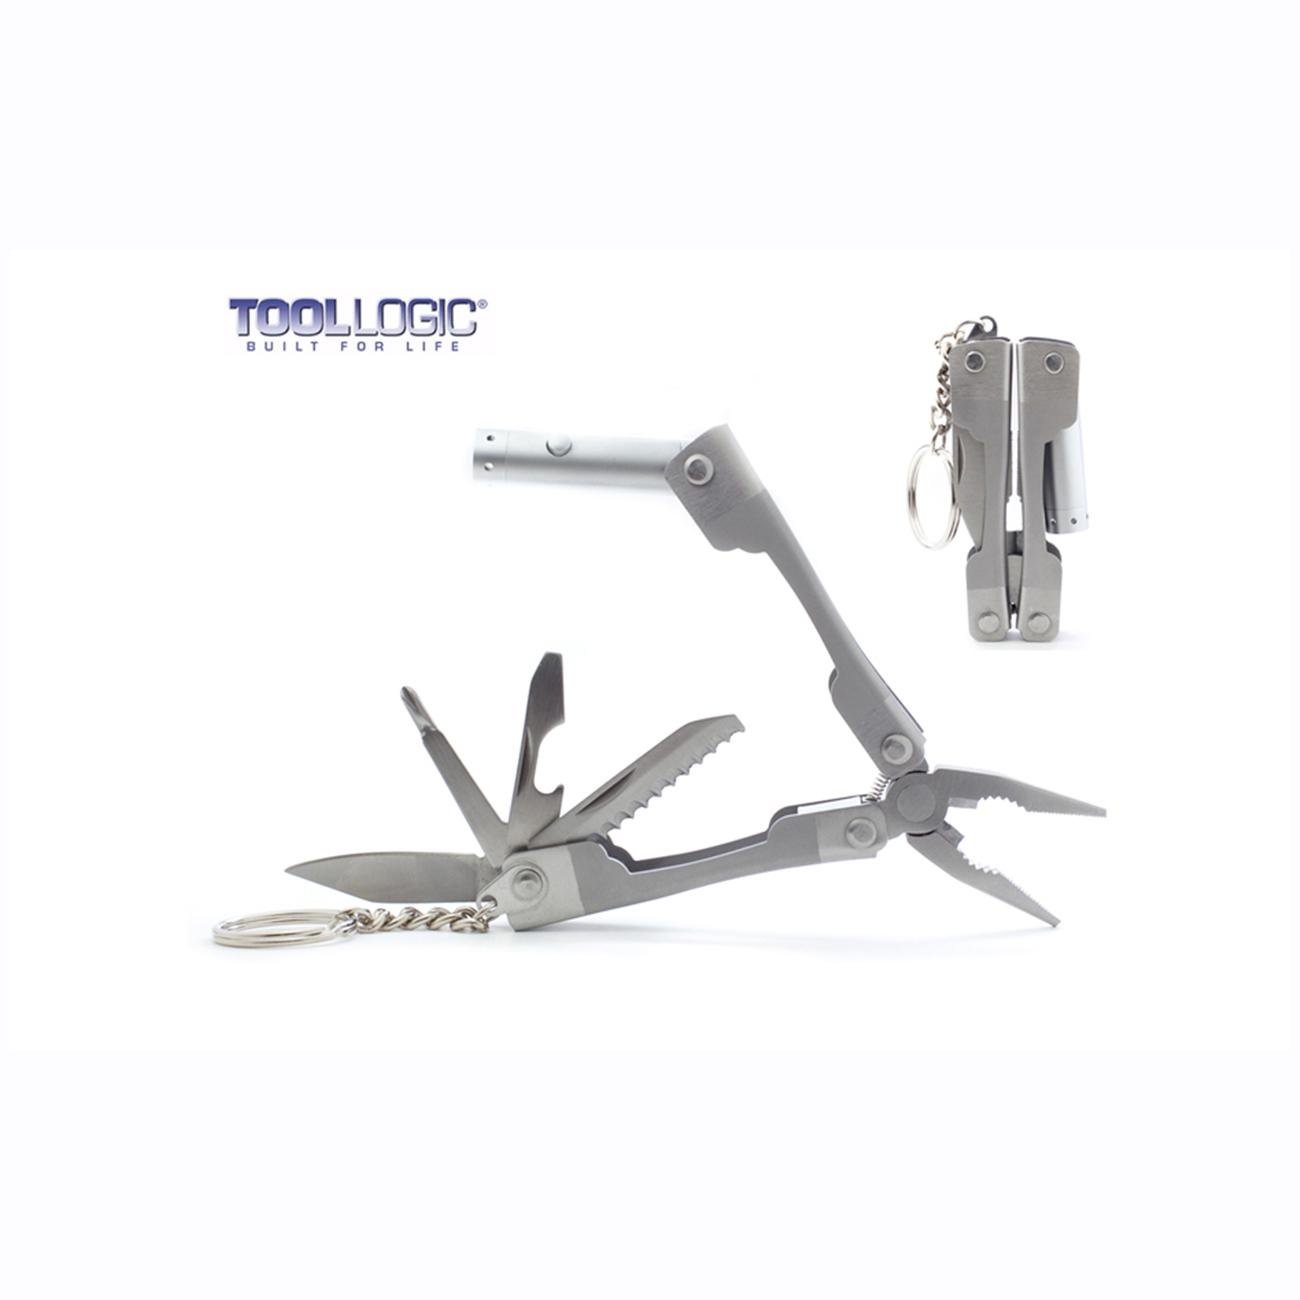 Toologic All-in-one Multi-tool Pocket Knife - Thumbnail 2